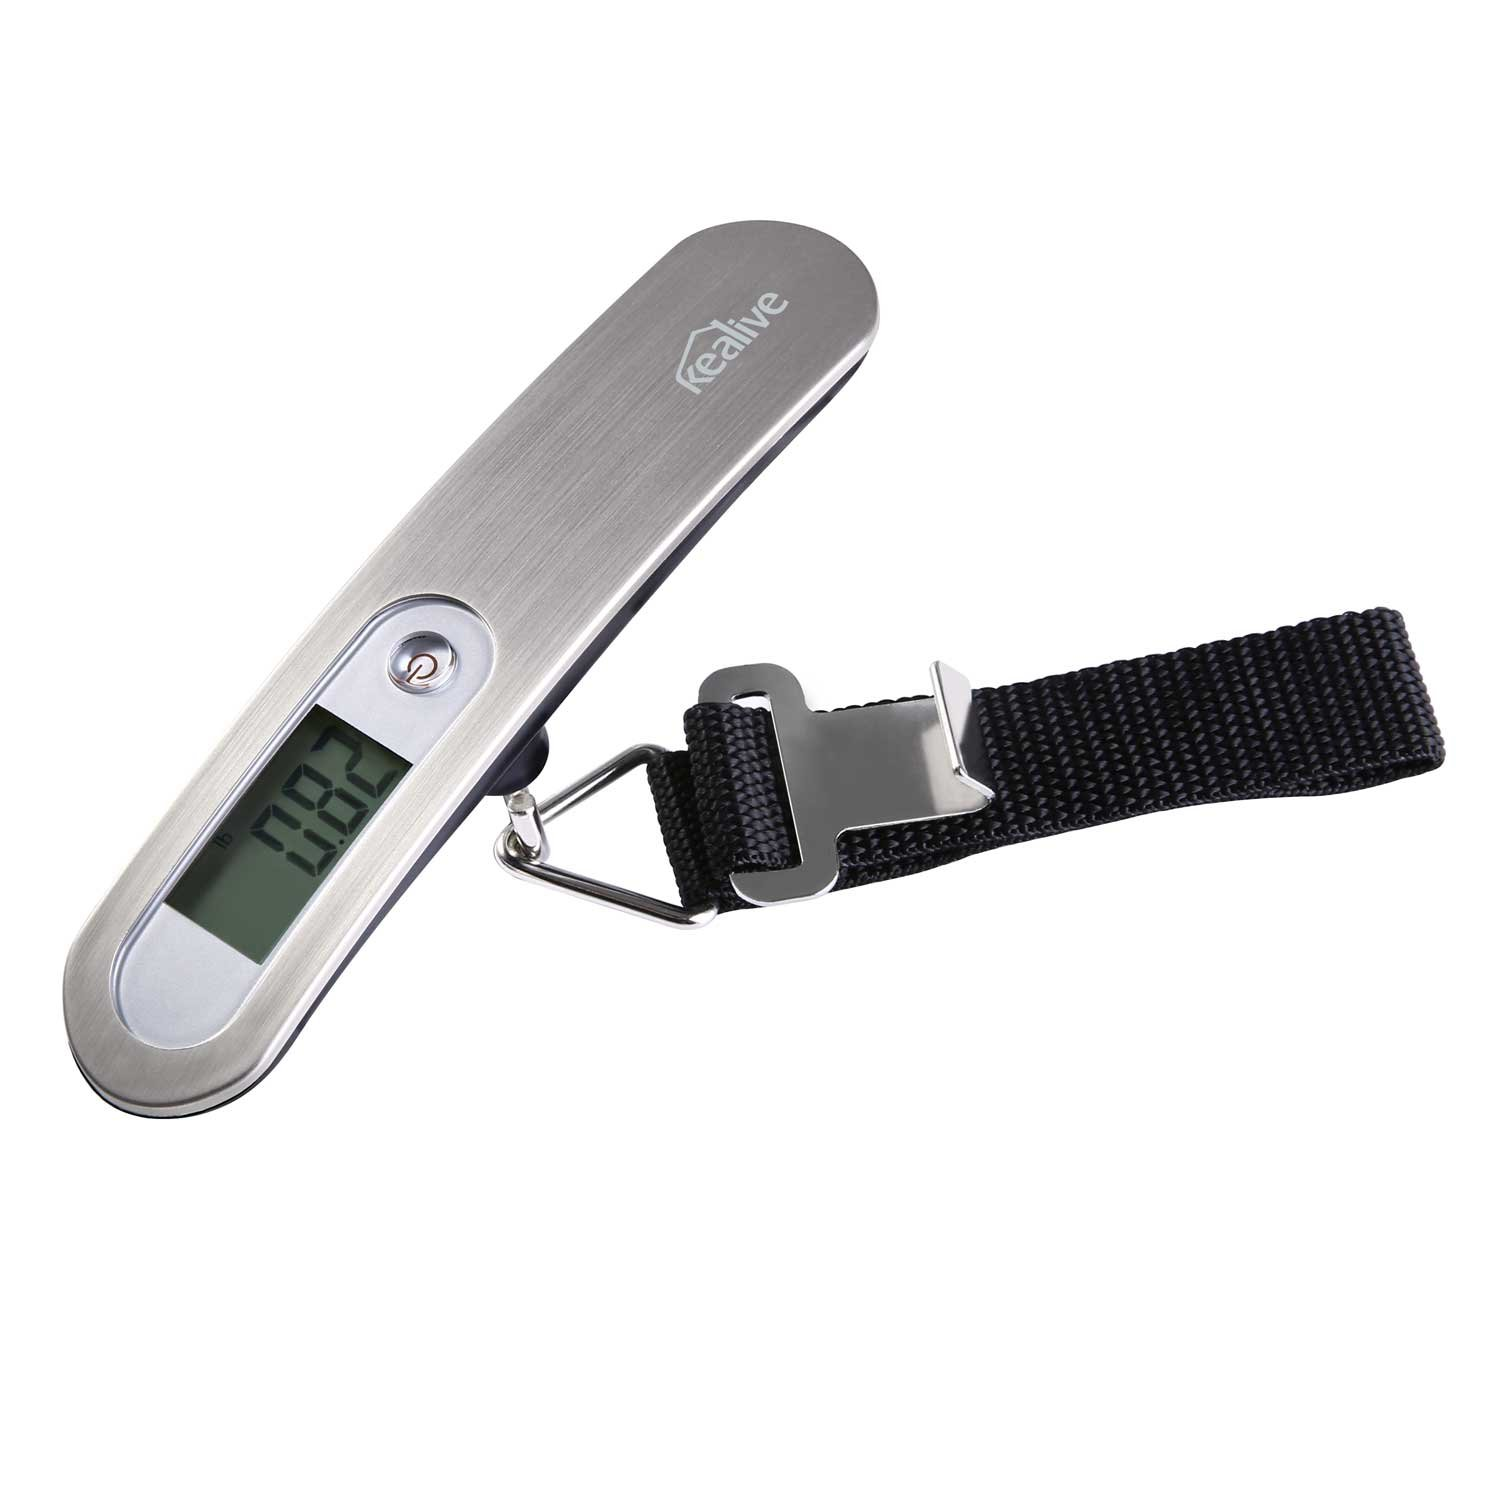 Kealive Luggage Scale, Digital Hanging Luggage Scale for Traveler, 0.02lb High-accuracy Reading, Auto-off, Unit Convertible, 110lb Max Weight Capacity, Battery Included